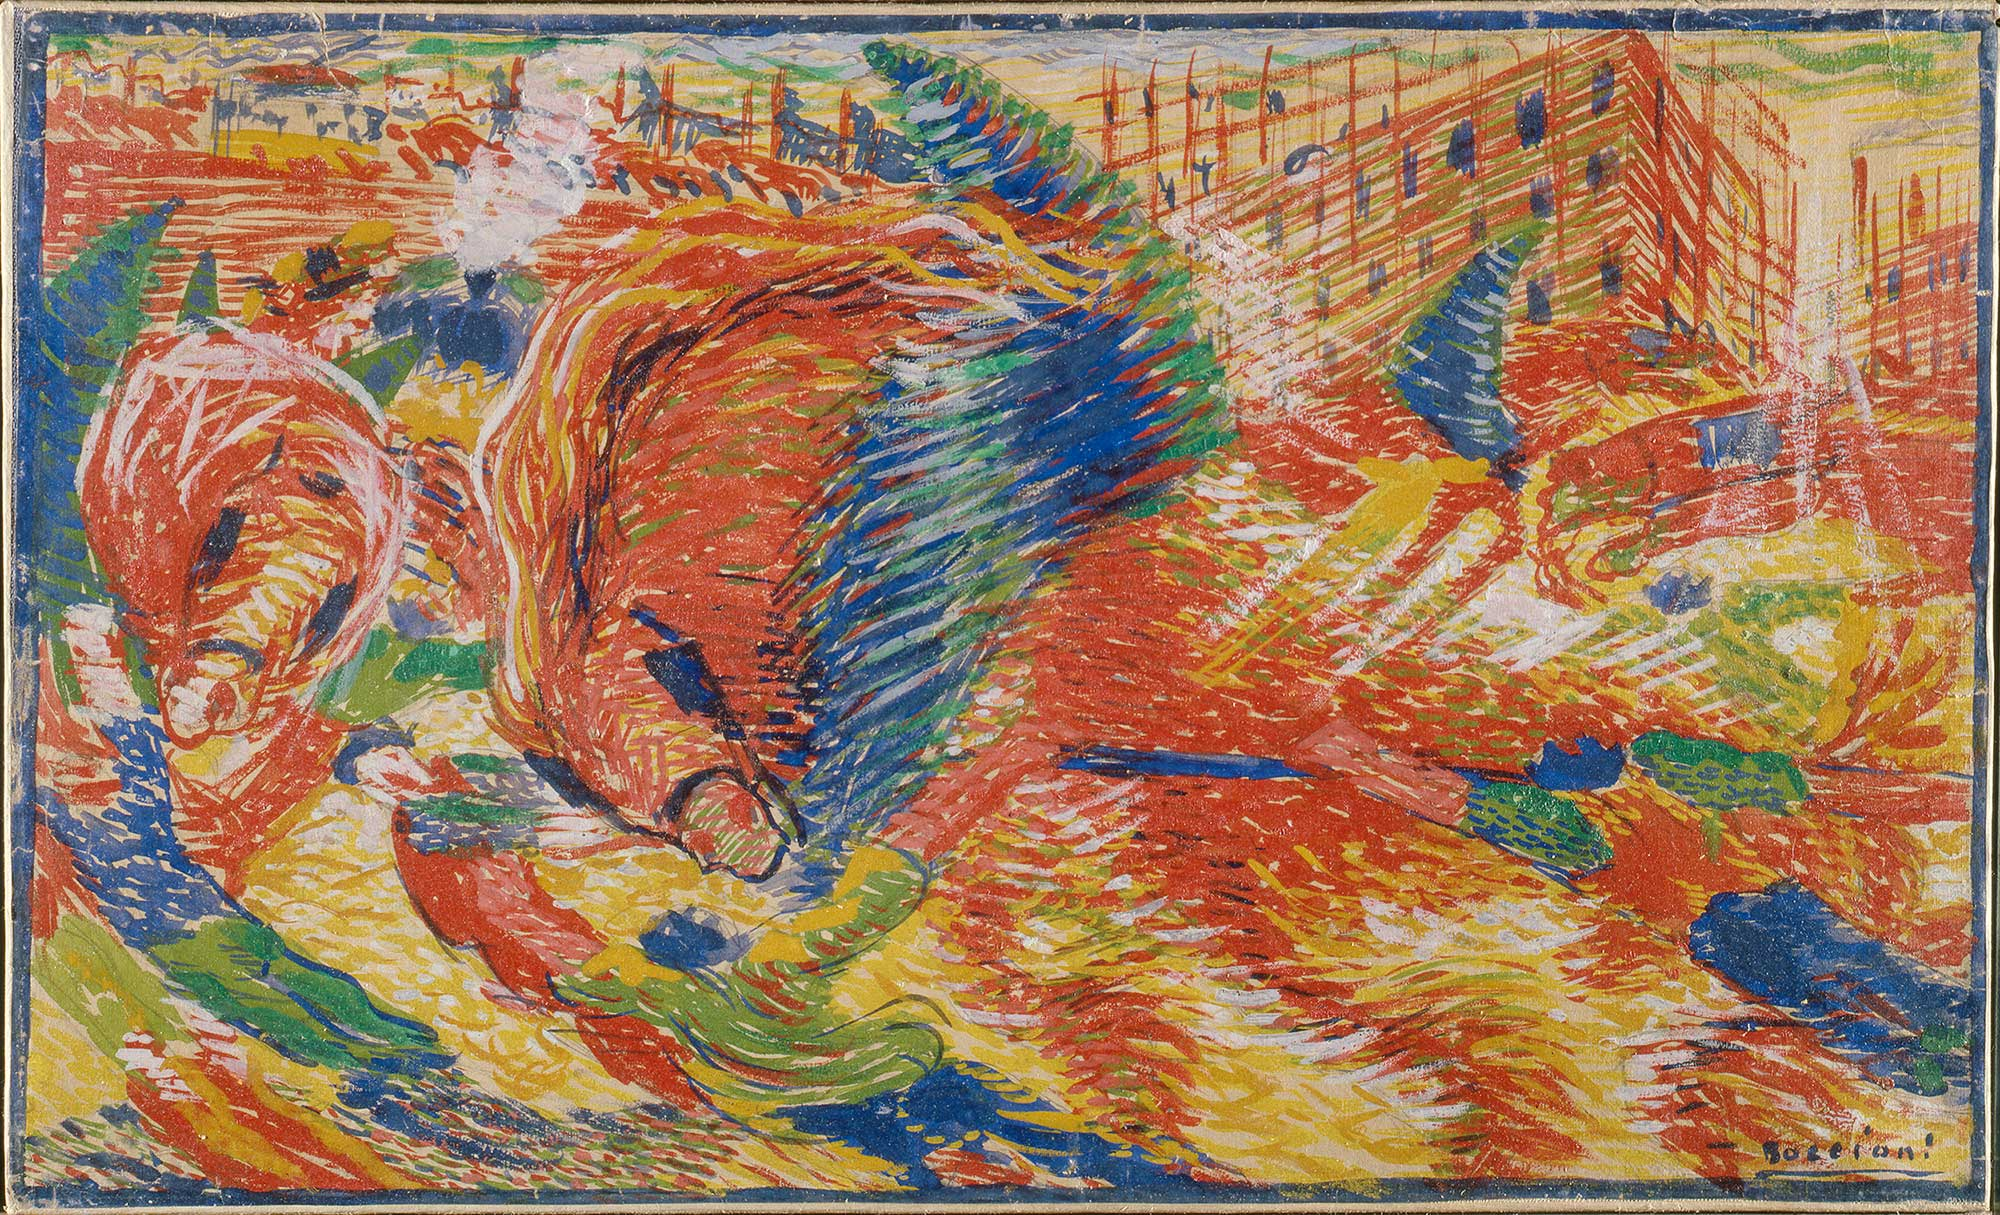 The city rises, 1910, U. Boccioni